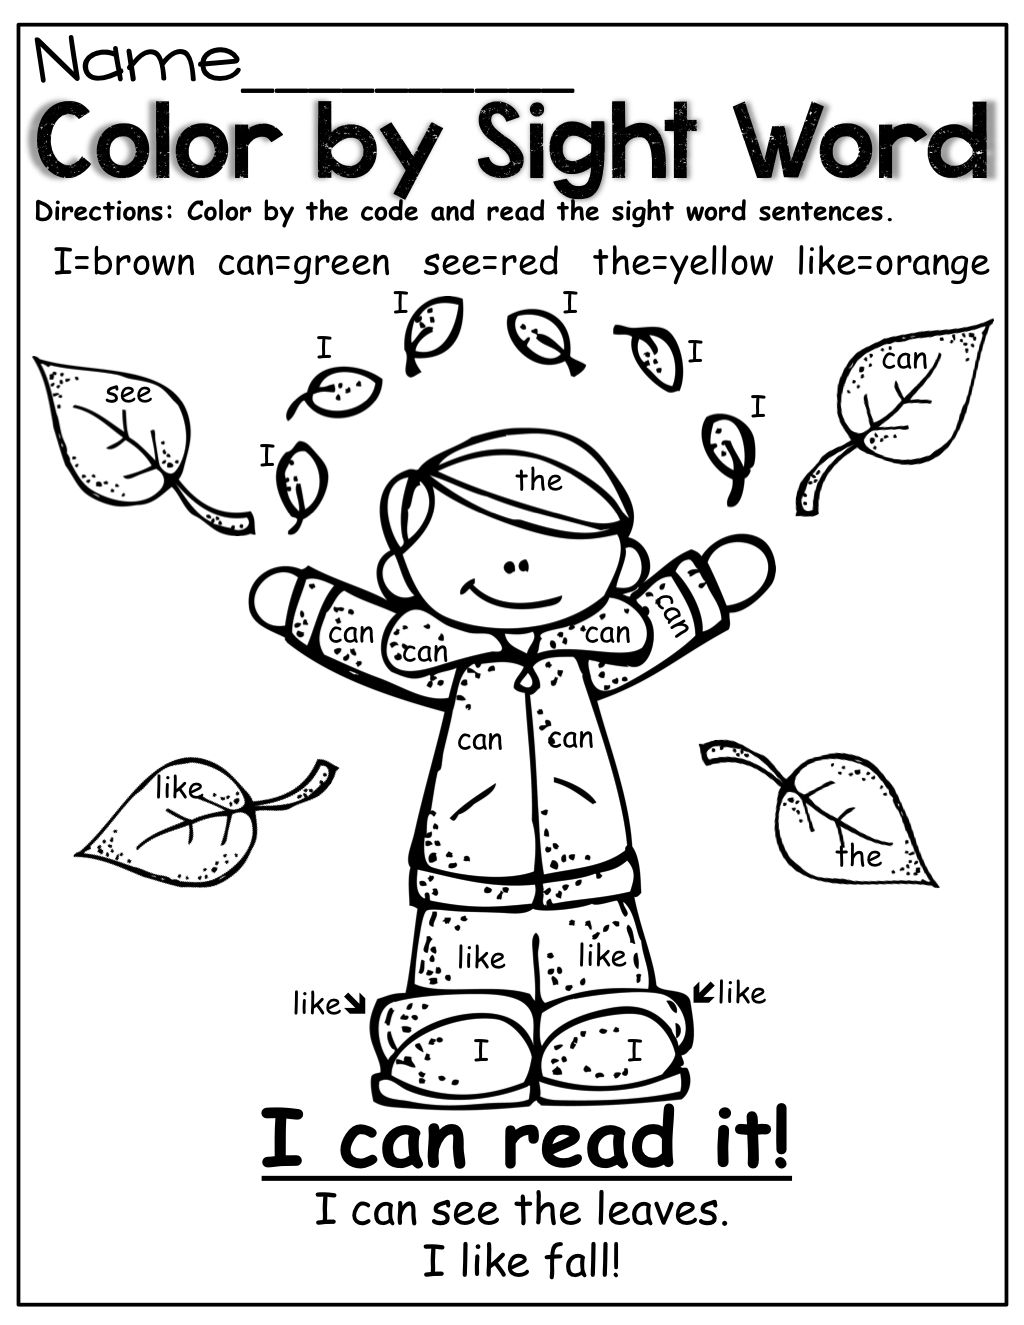 Worksheets Color By Sight Word Worksheets color by sight word fall style work pinterest style